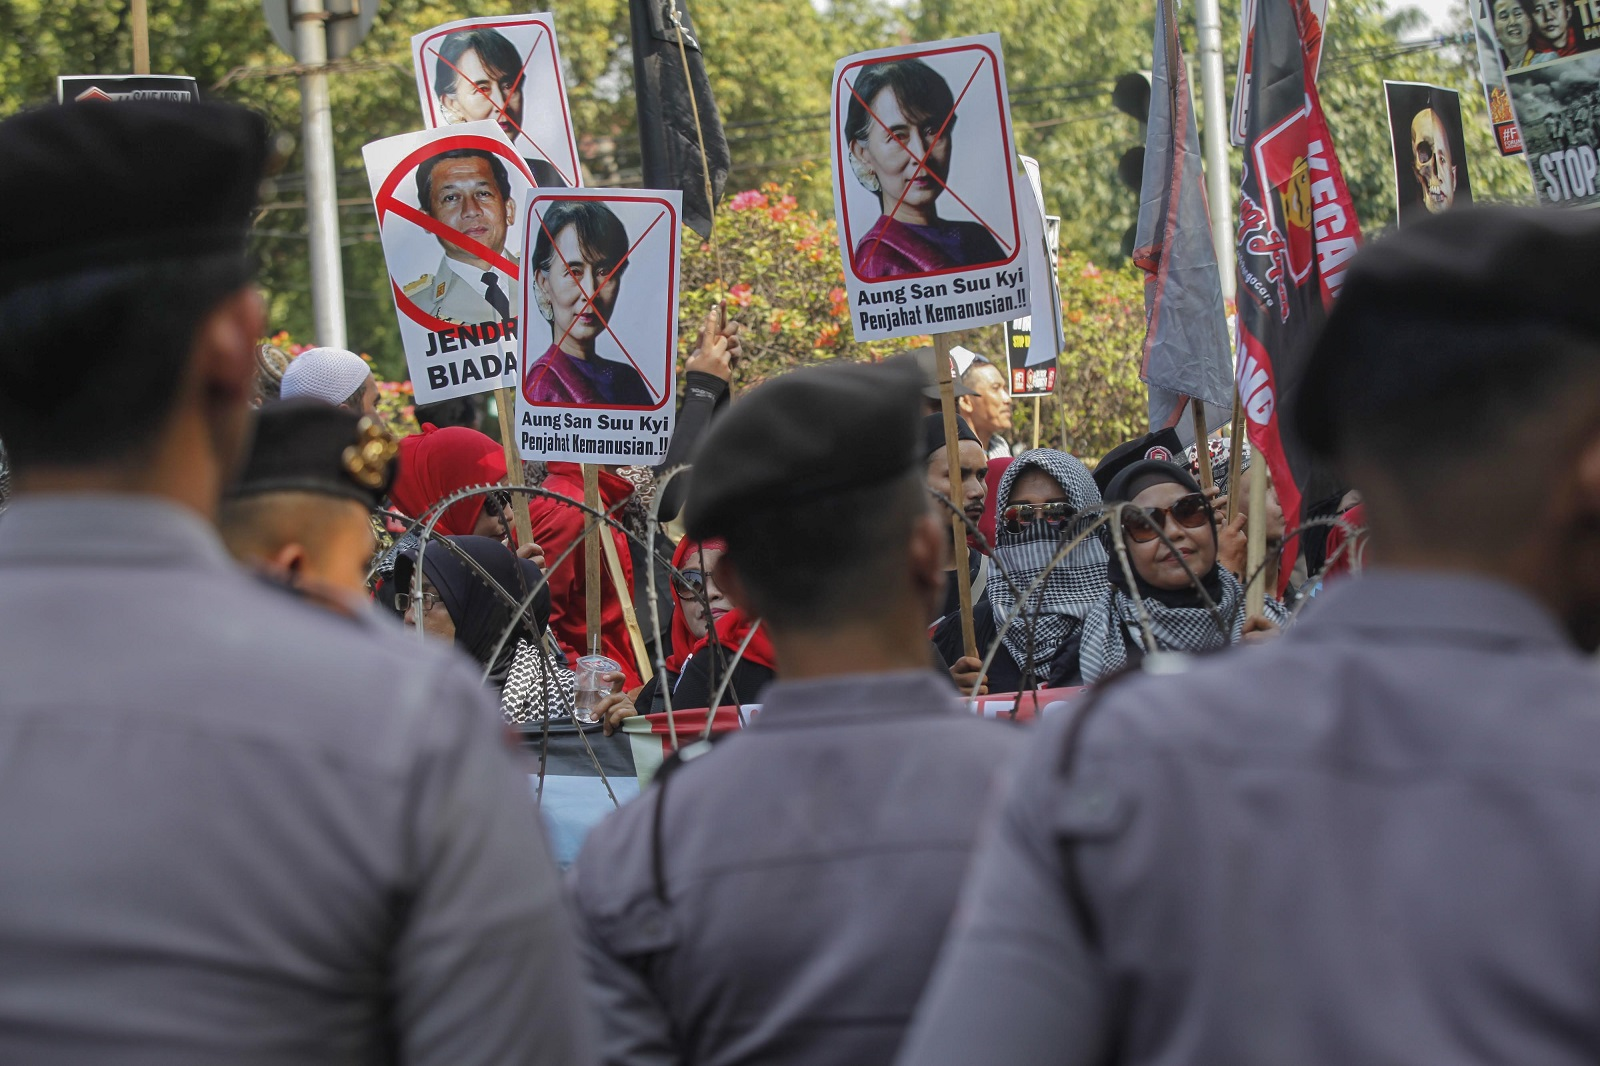 Indonesian Muslim protesters at a protest outside of Myanmar Embassy in Jakarta. (Photo: Agoes Rudianto/Anadolu Agency/Getty Images)